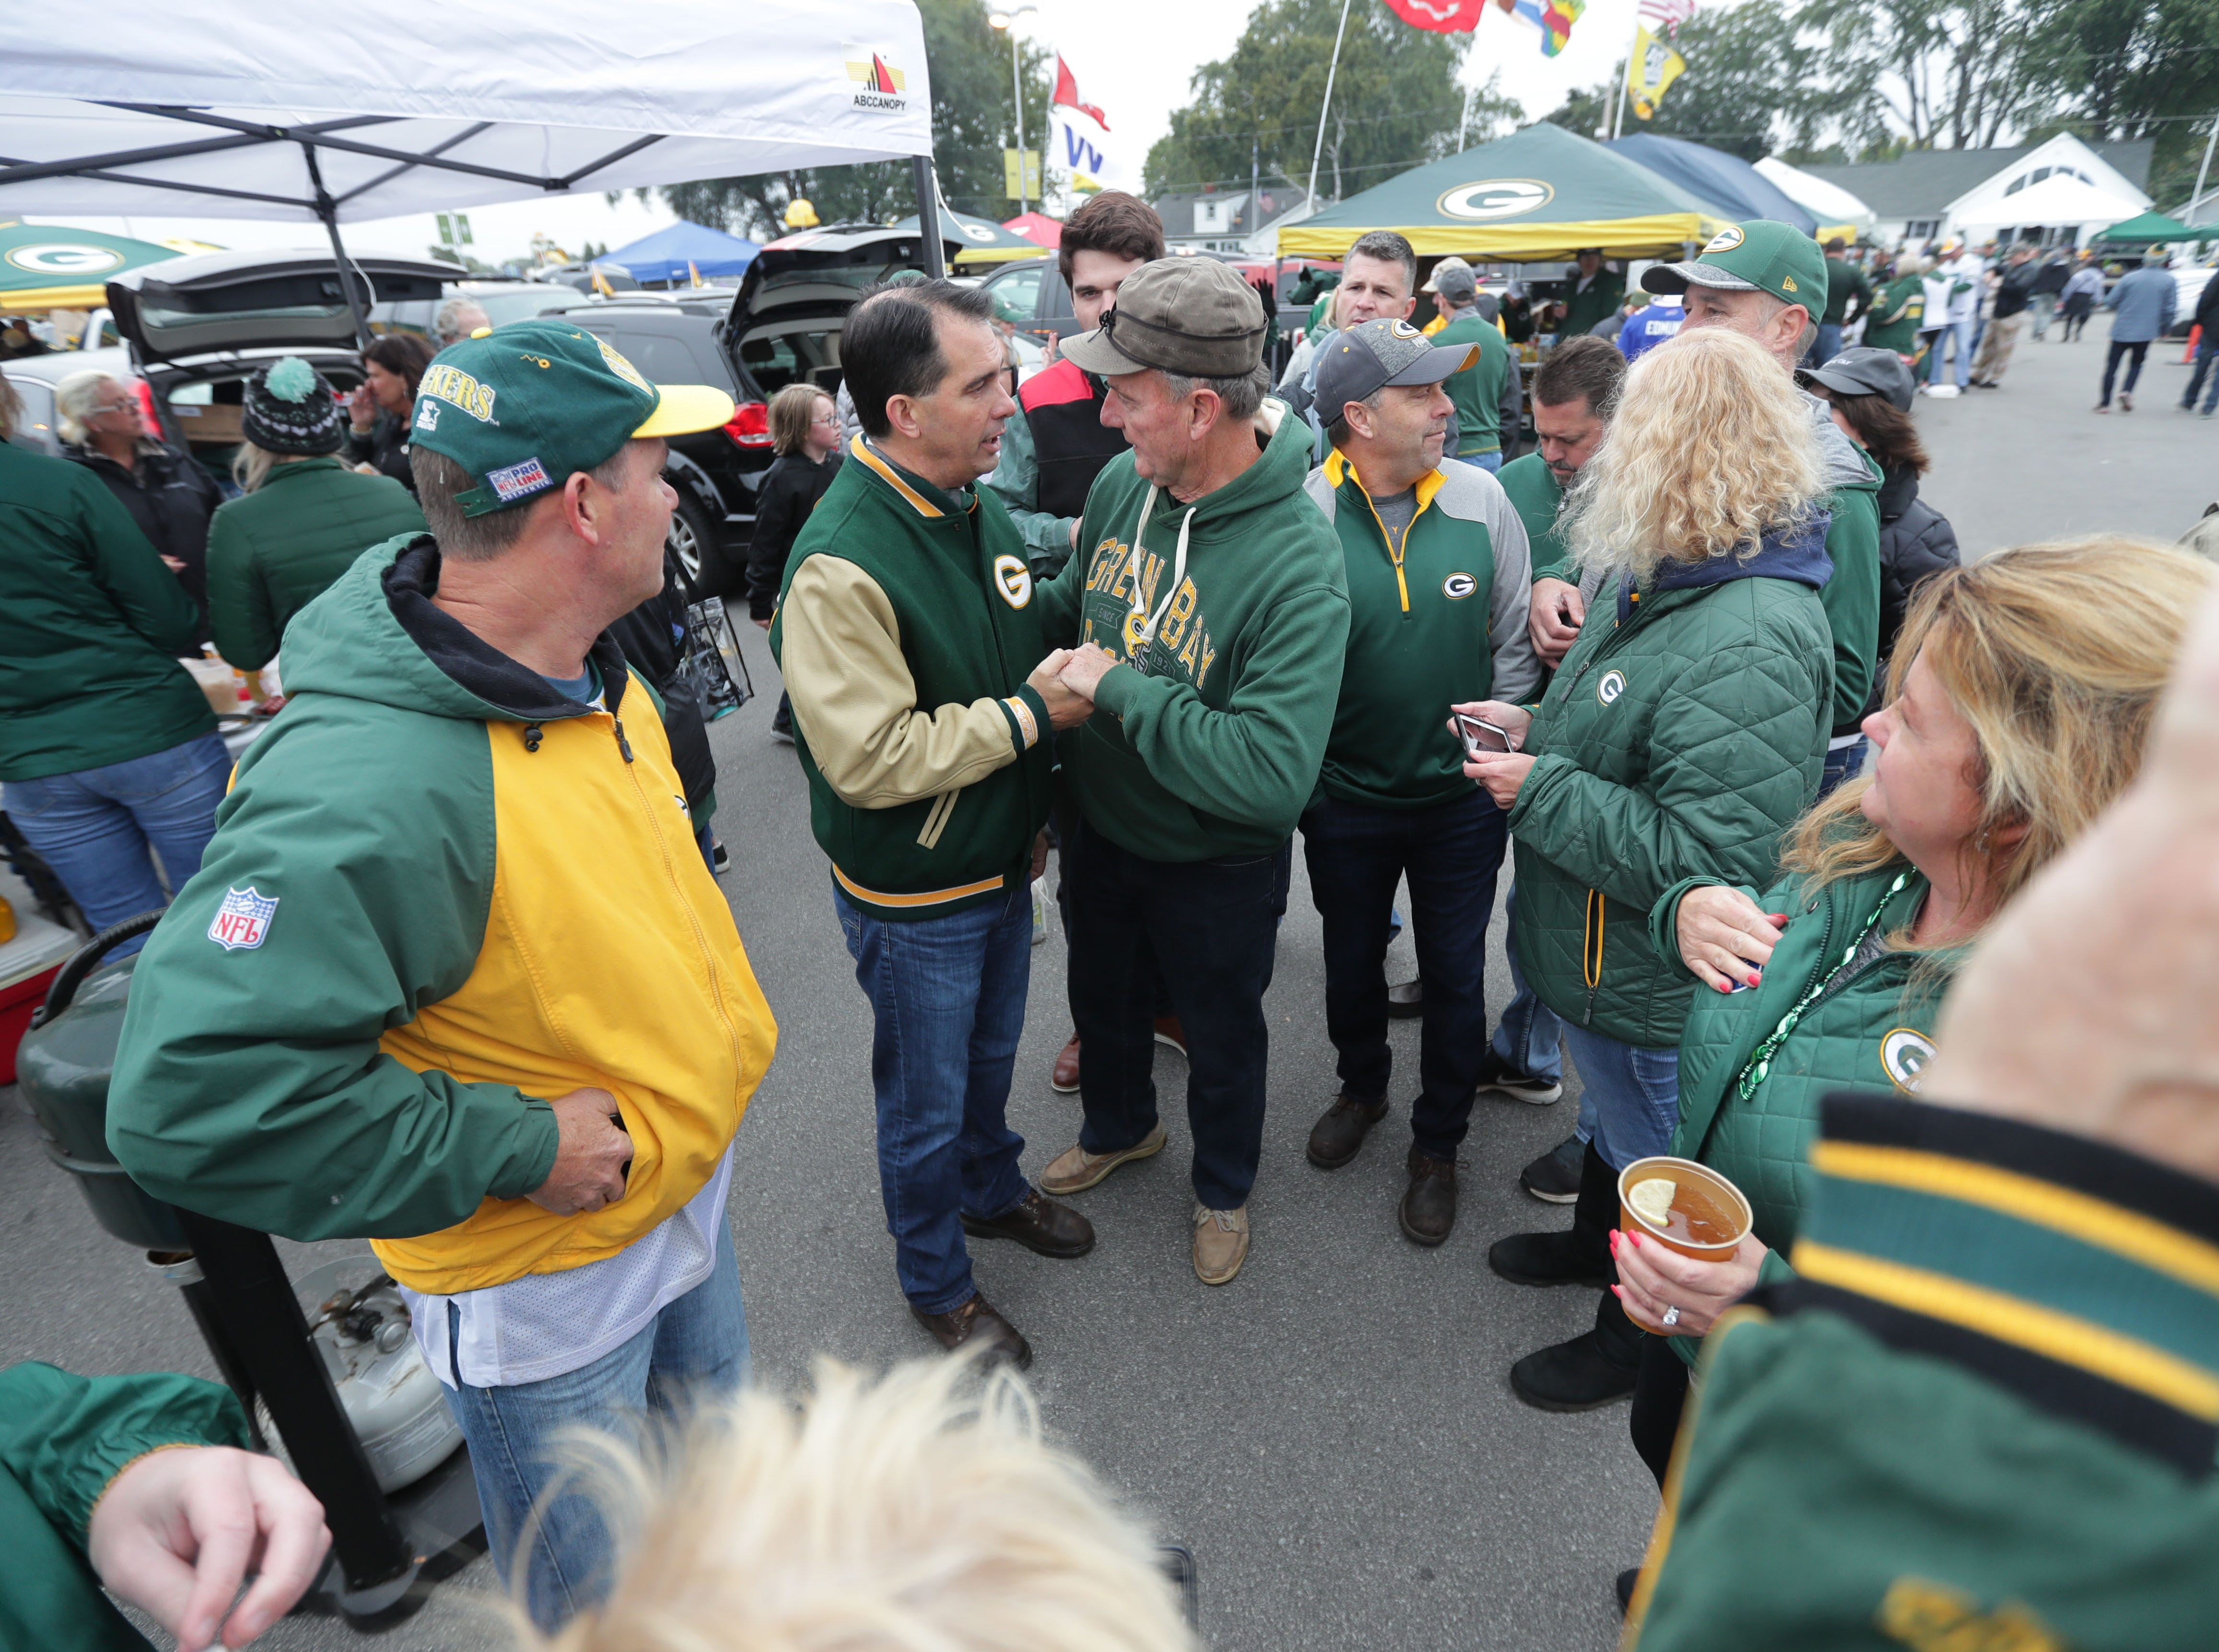 Gov. Scott Walker talks with supporters before the Green Bay Packers game against the Buffalo Bills at Lambeau Field in Green Bay, Wis. on Sunday, September 30, 2018.